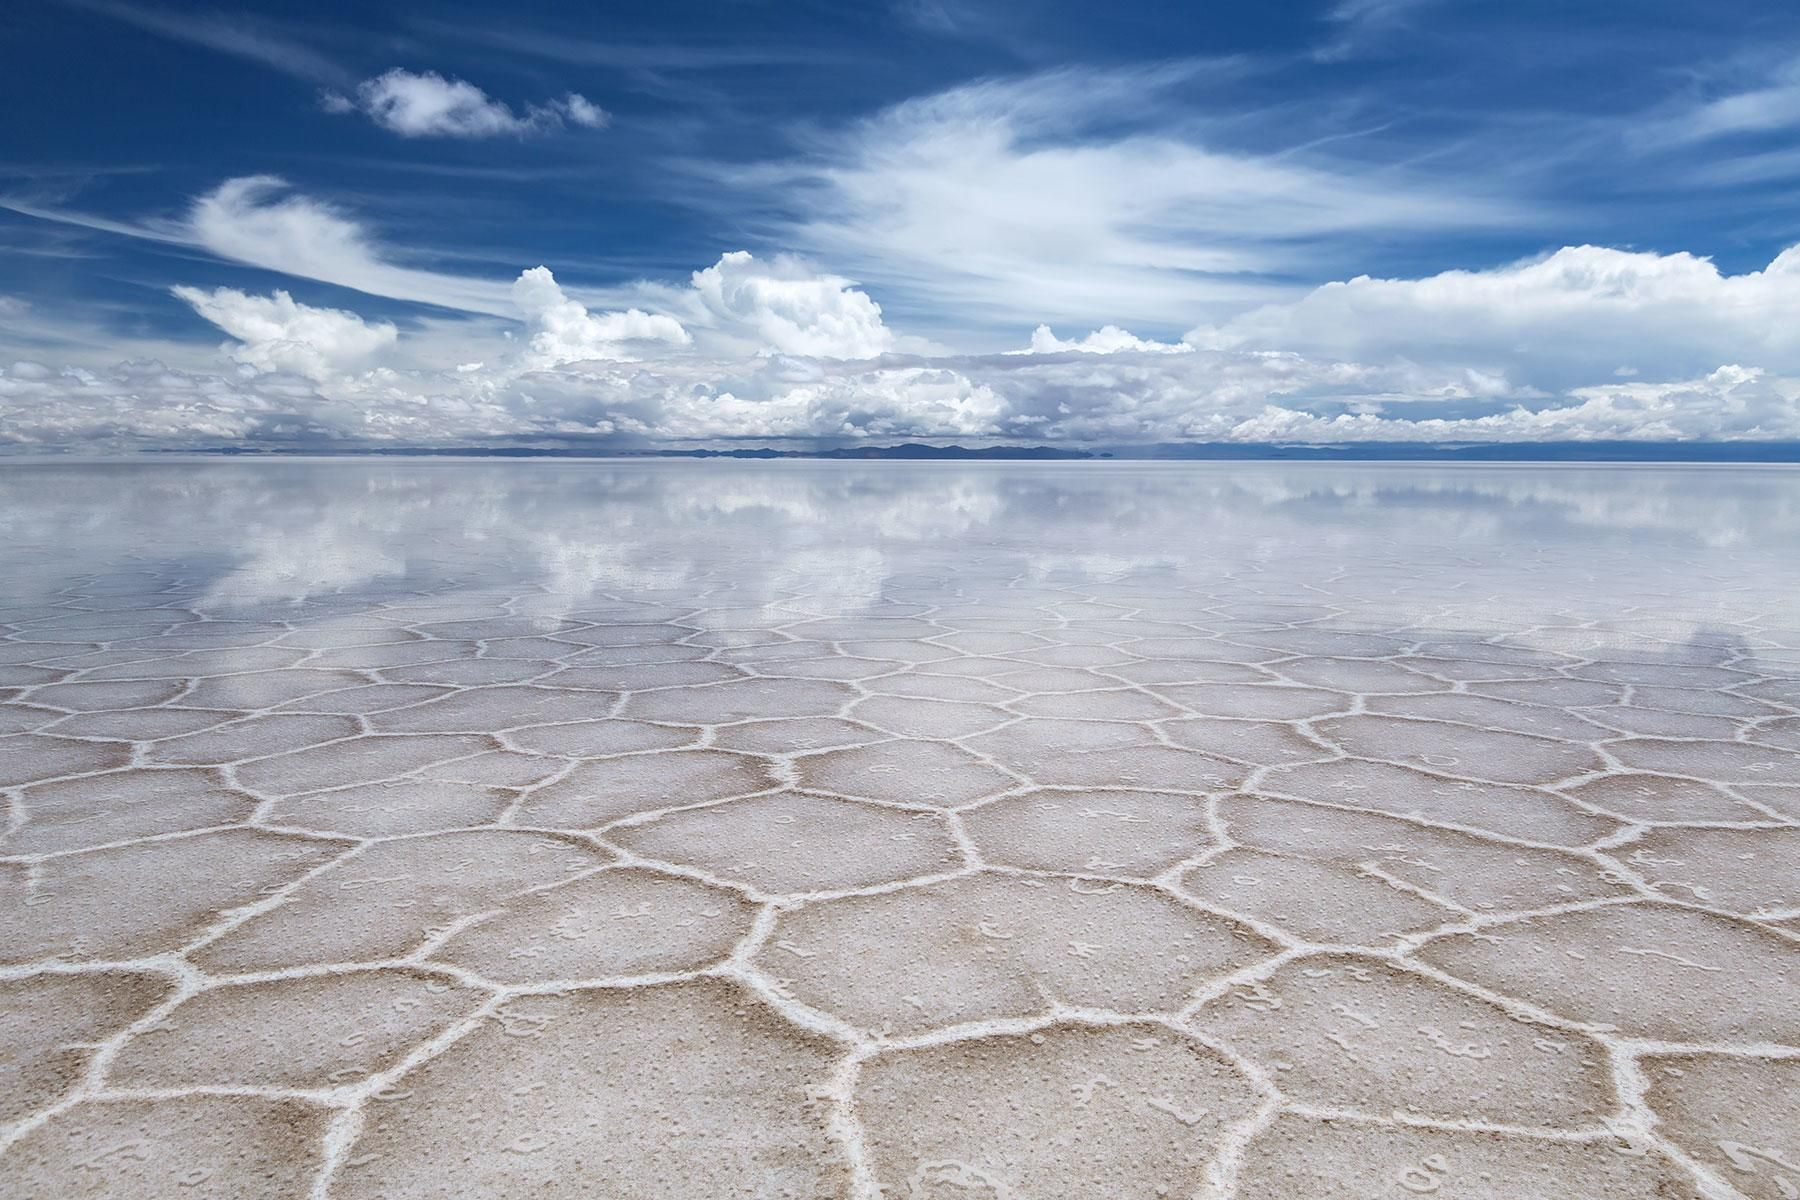 Salar De Uyuni 101 How To Visit The Largest Salt Flat In The